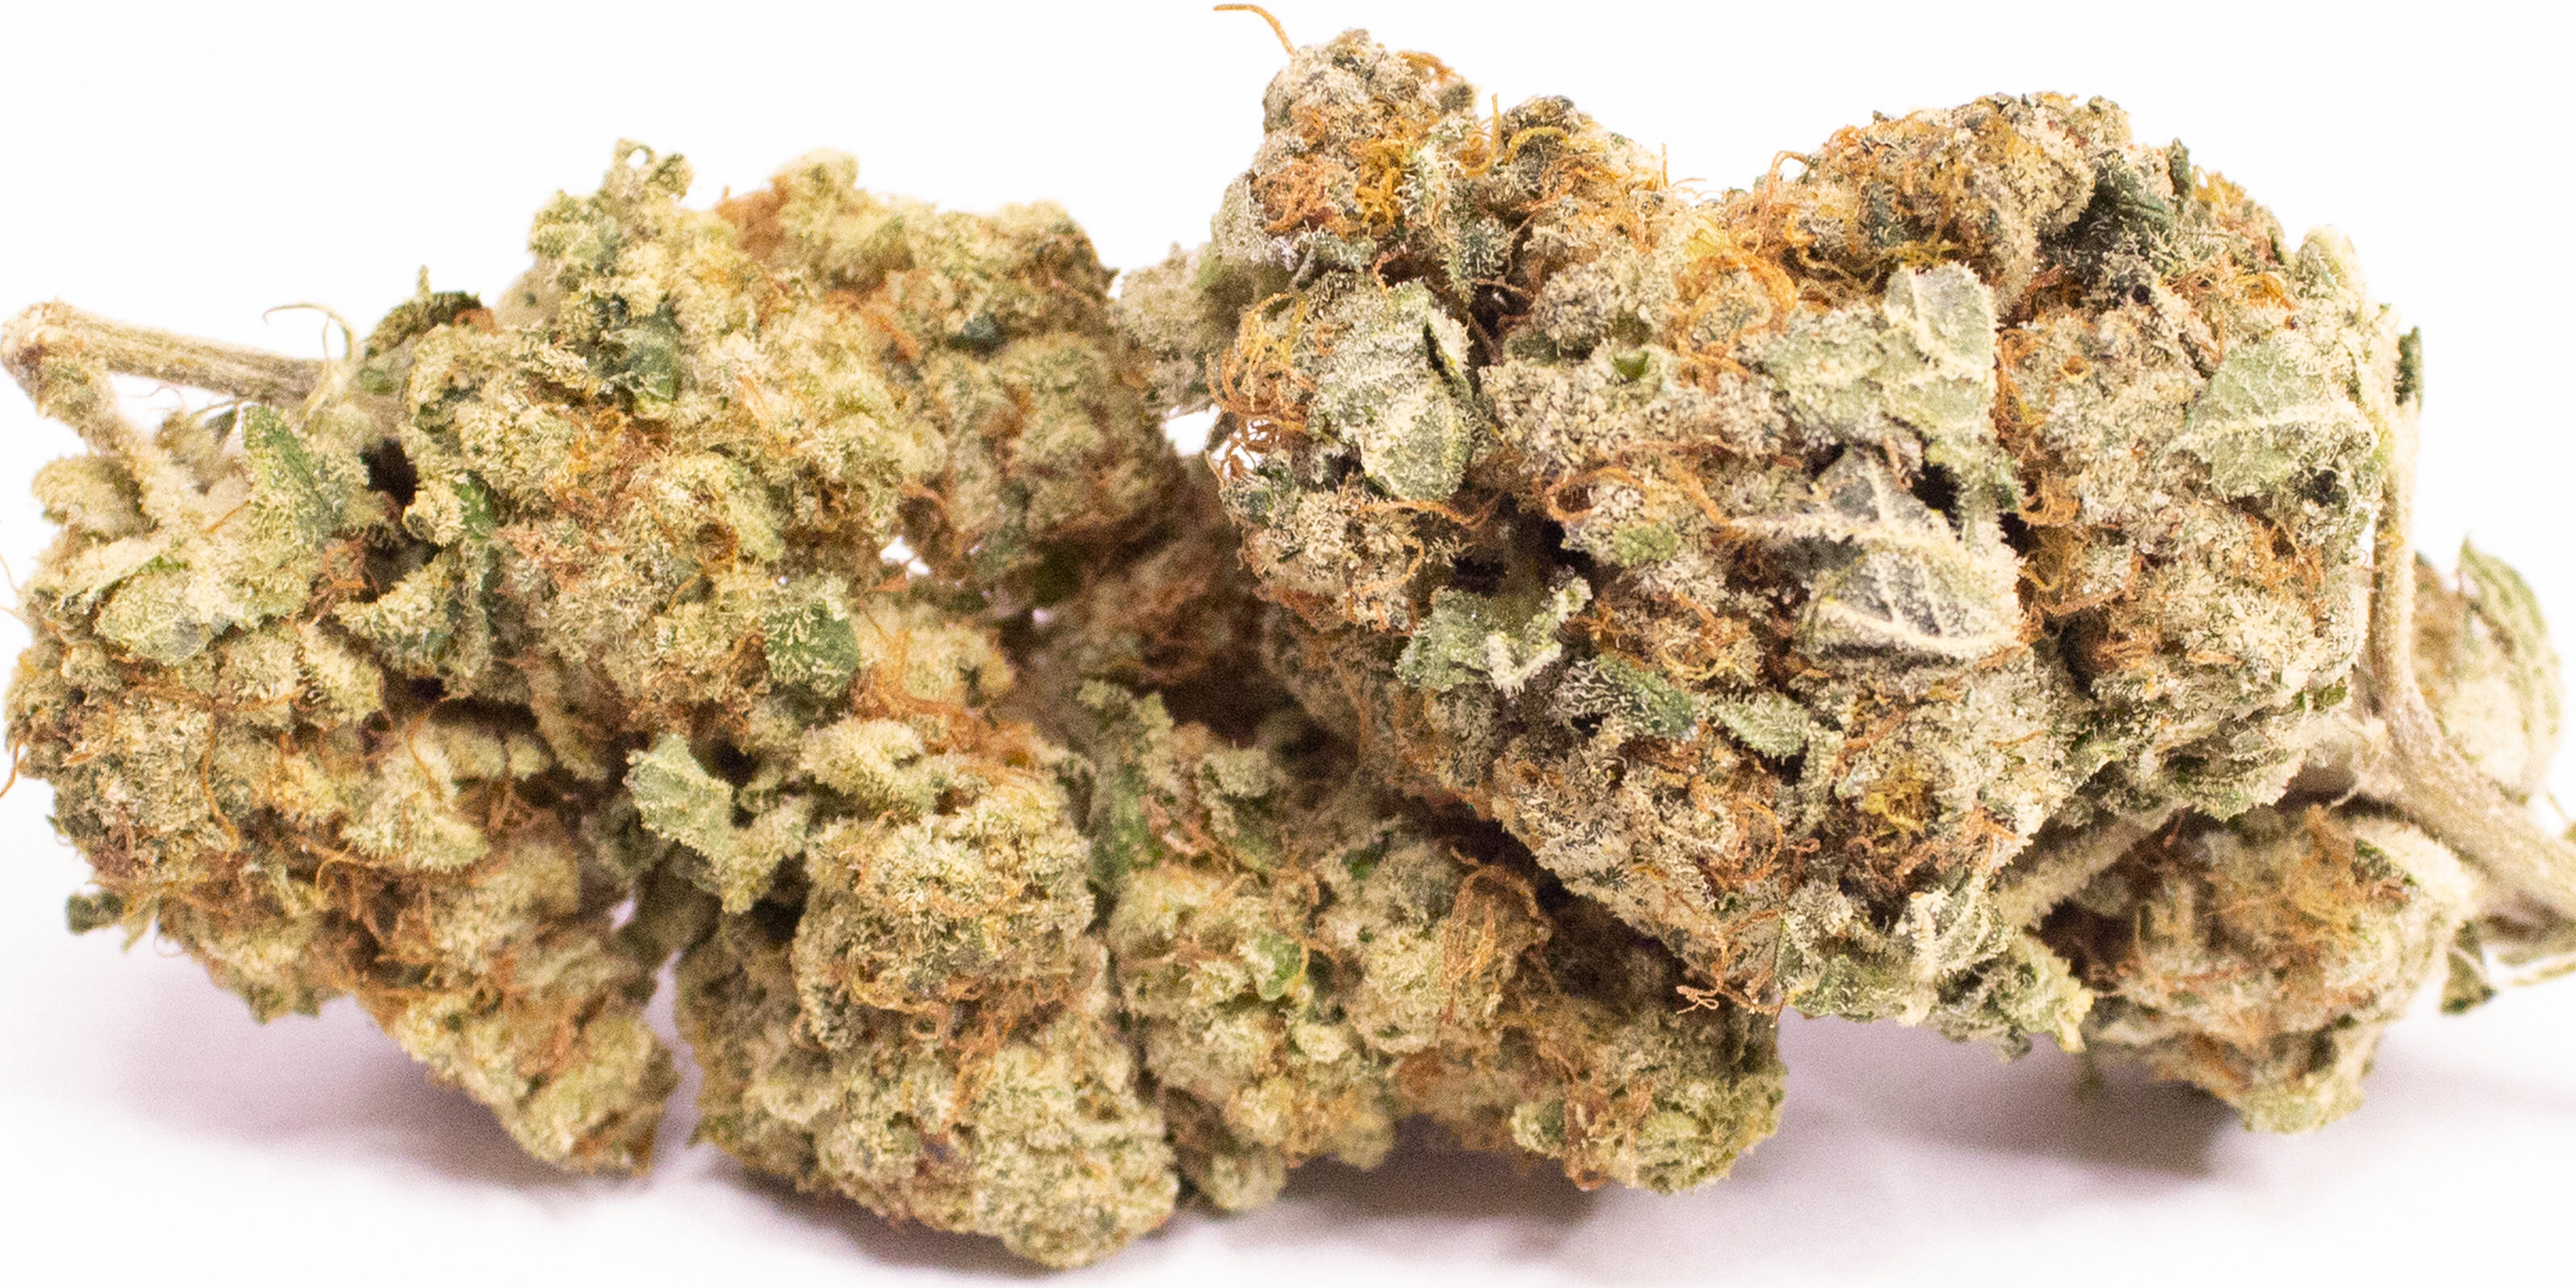 Online Dispensary Canada - Star Cookie Double